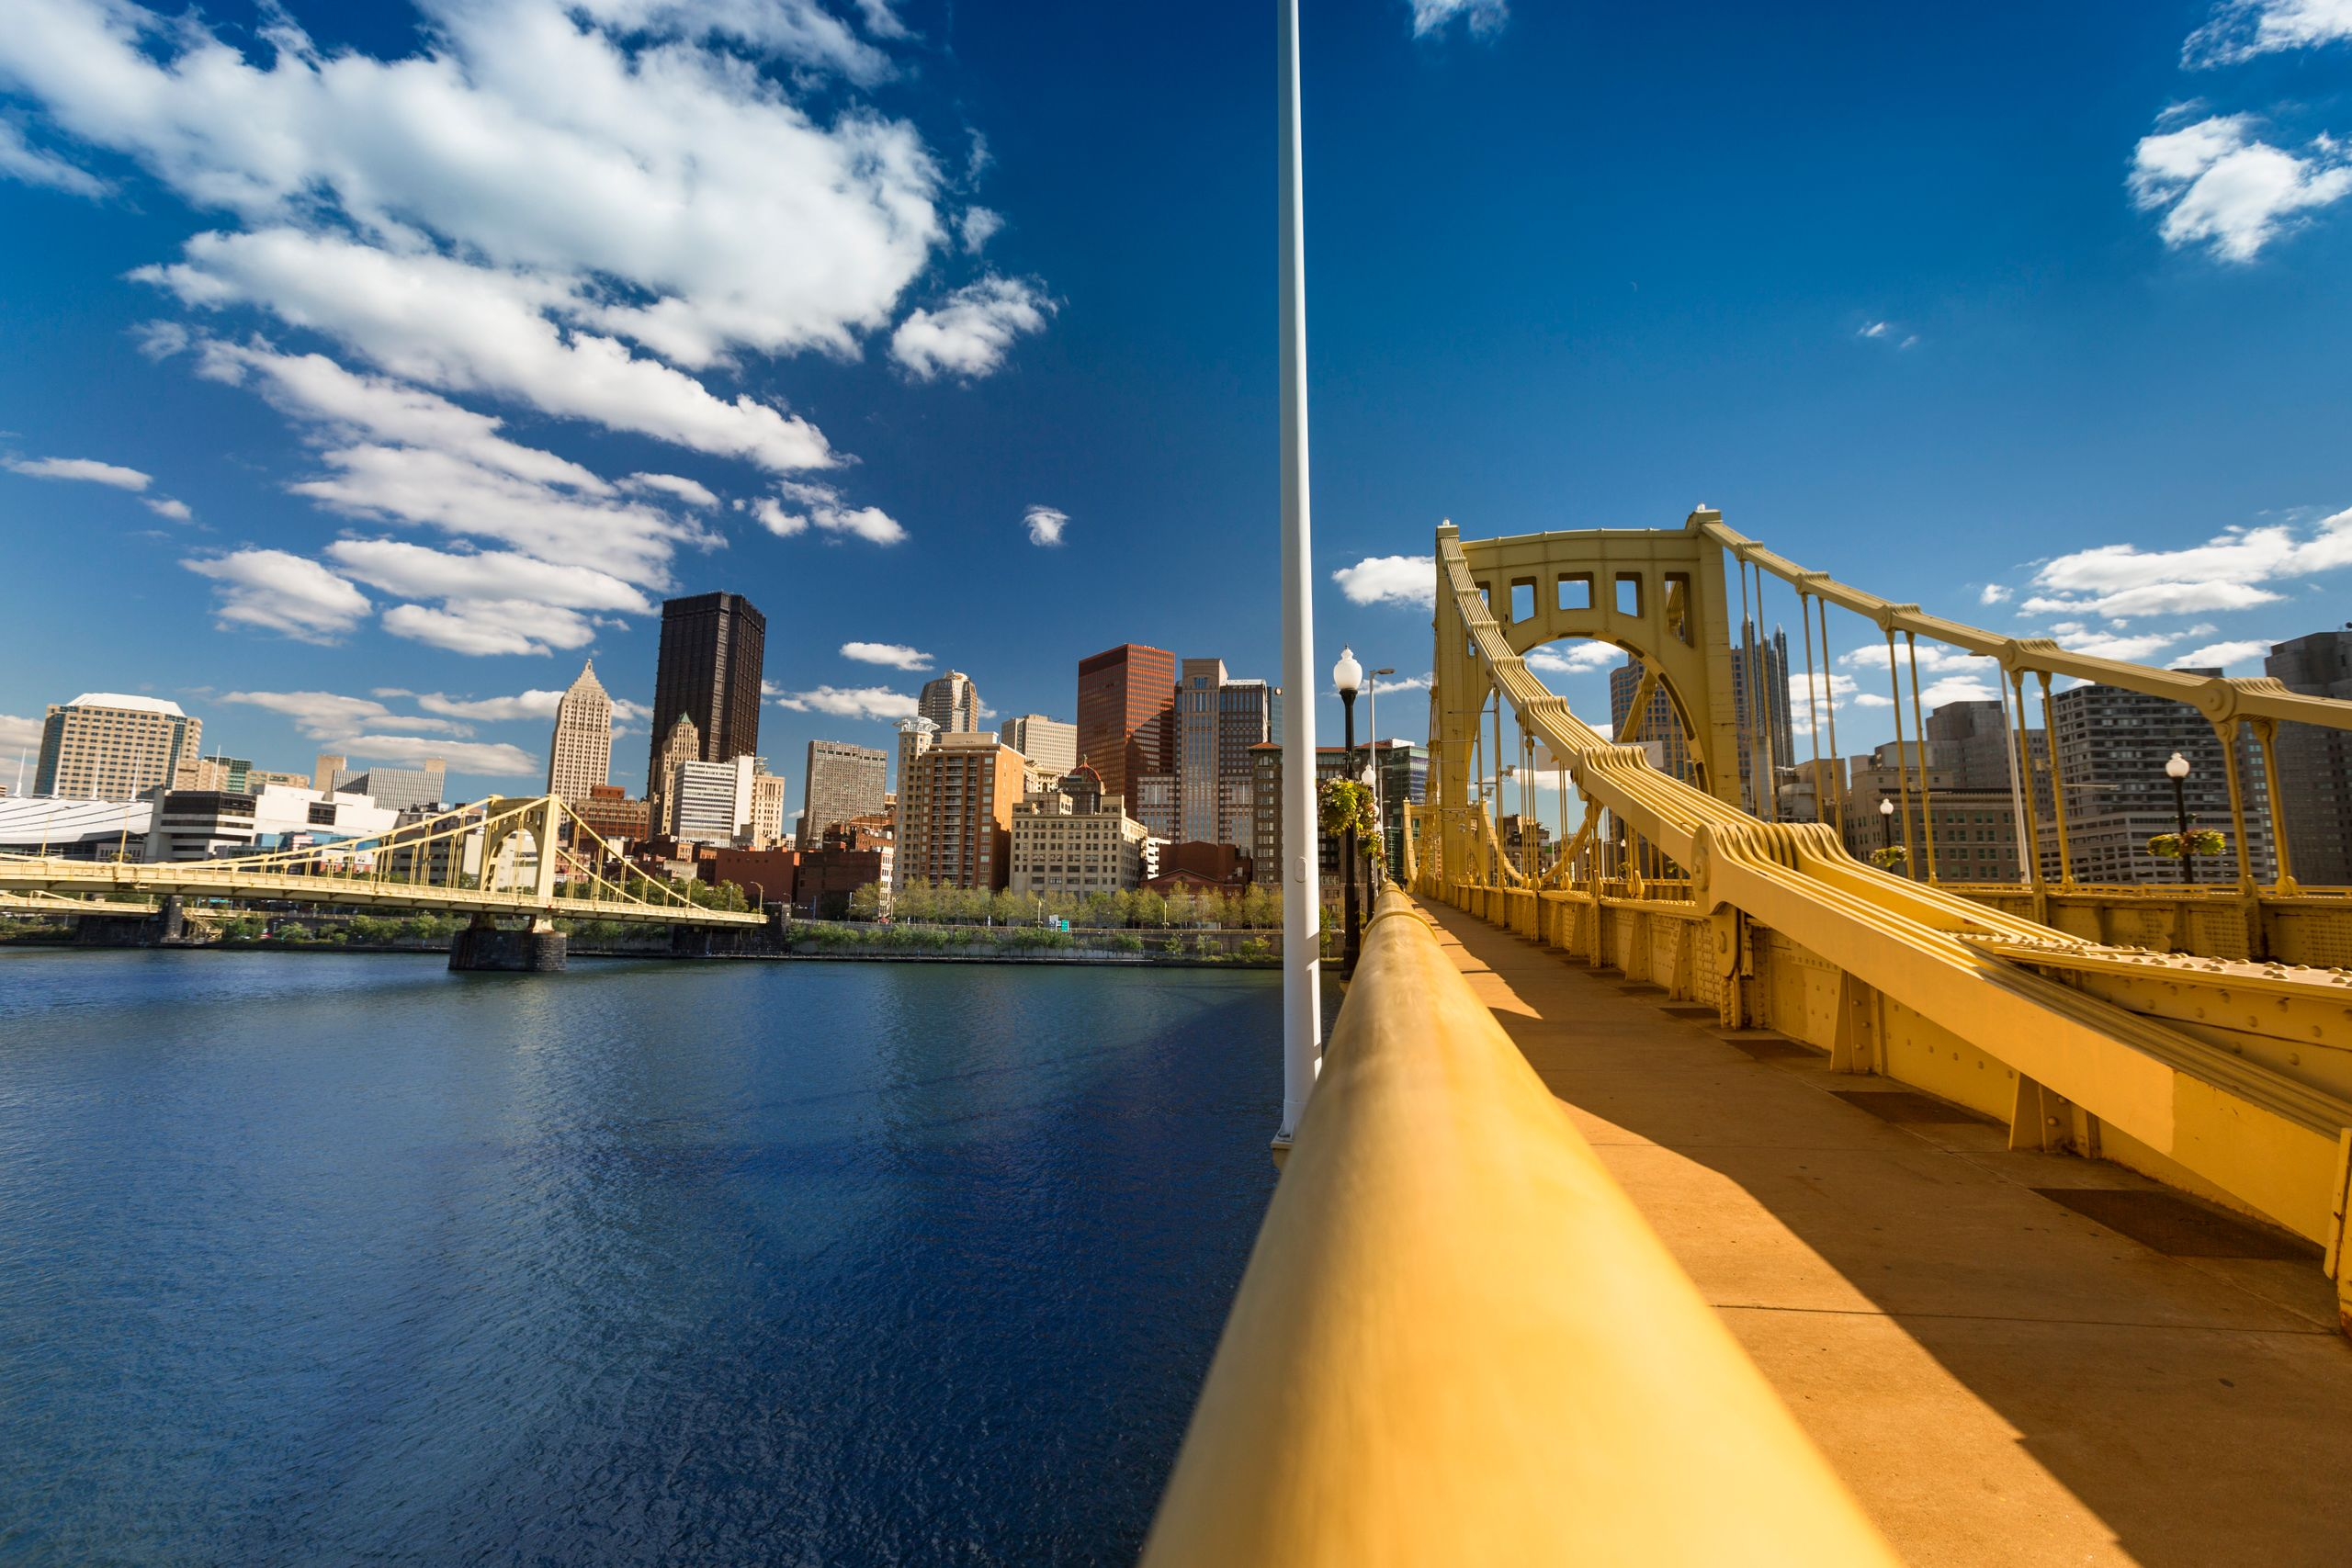 A view of the Roberto Clemente Bridge over the Allegheny River in Pittsburgh. Mayor William Peduto has welcomed the self-driv